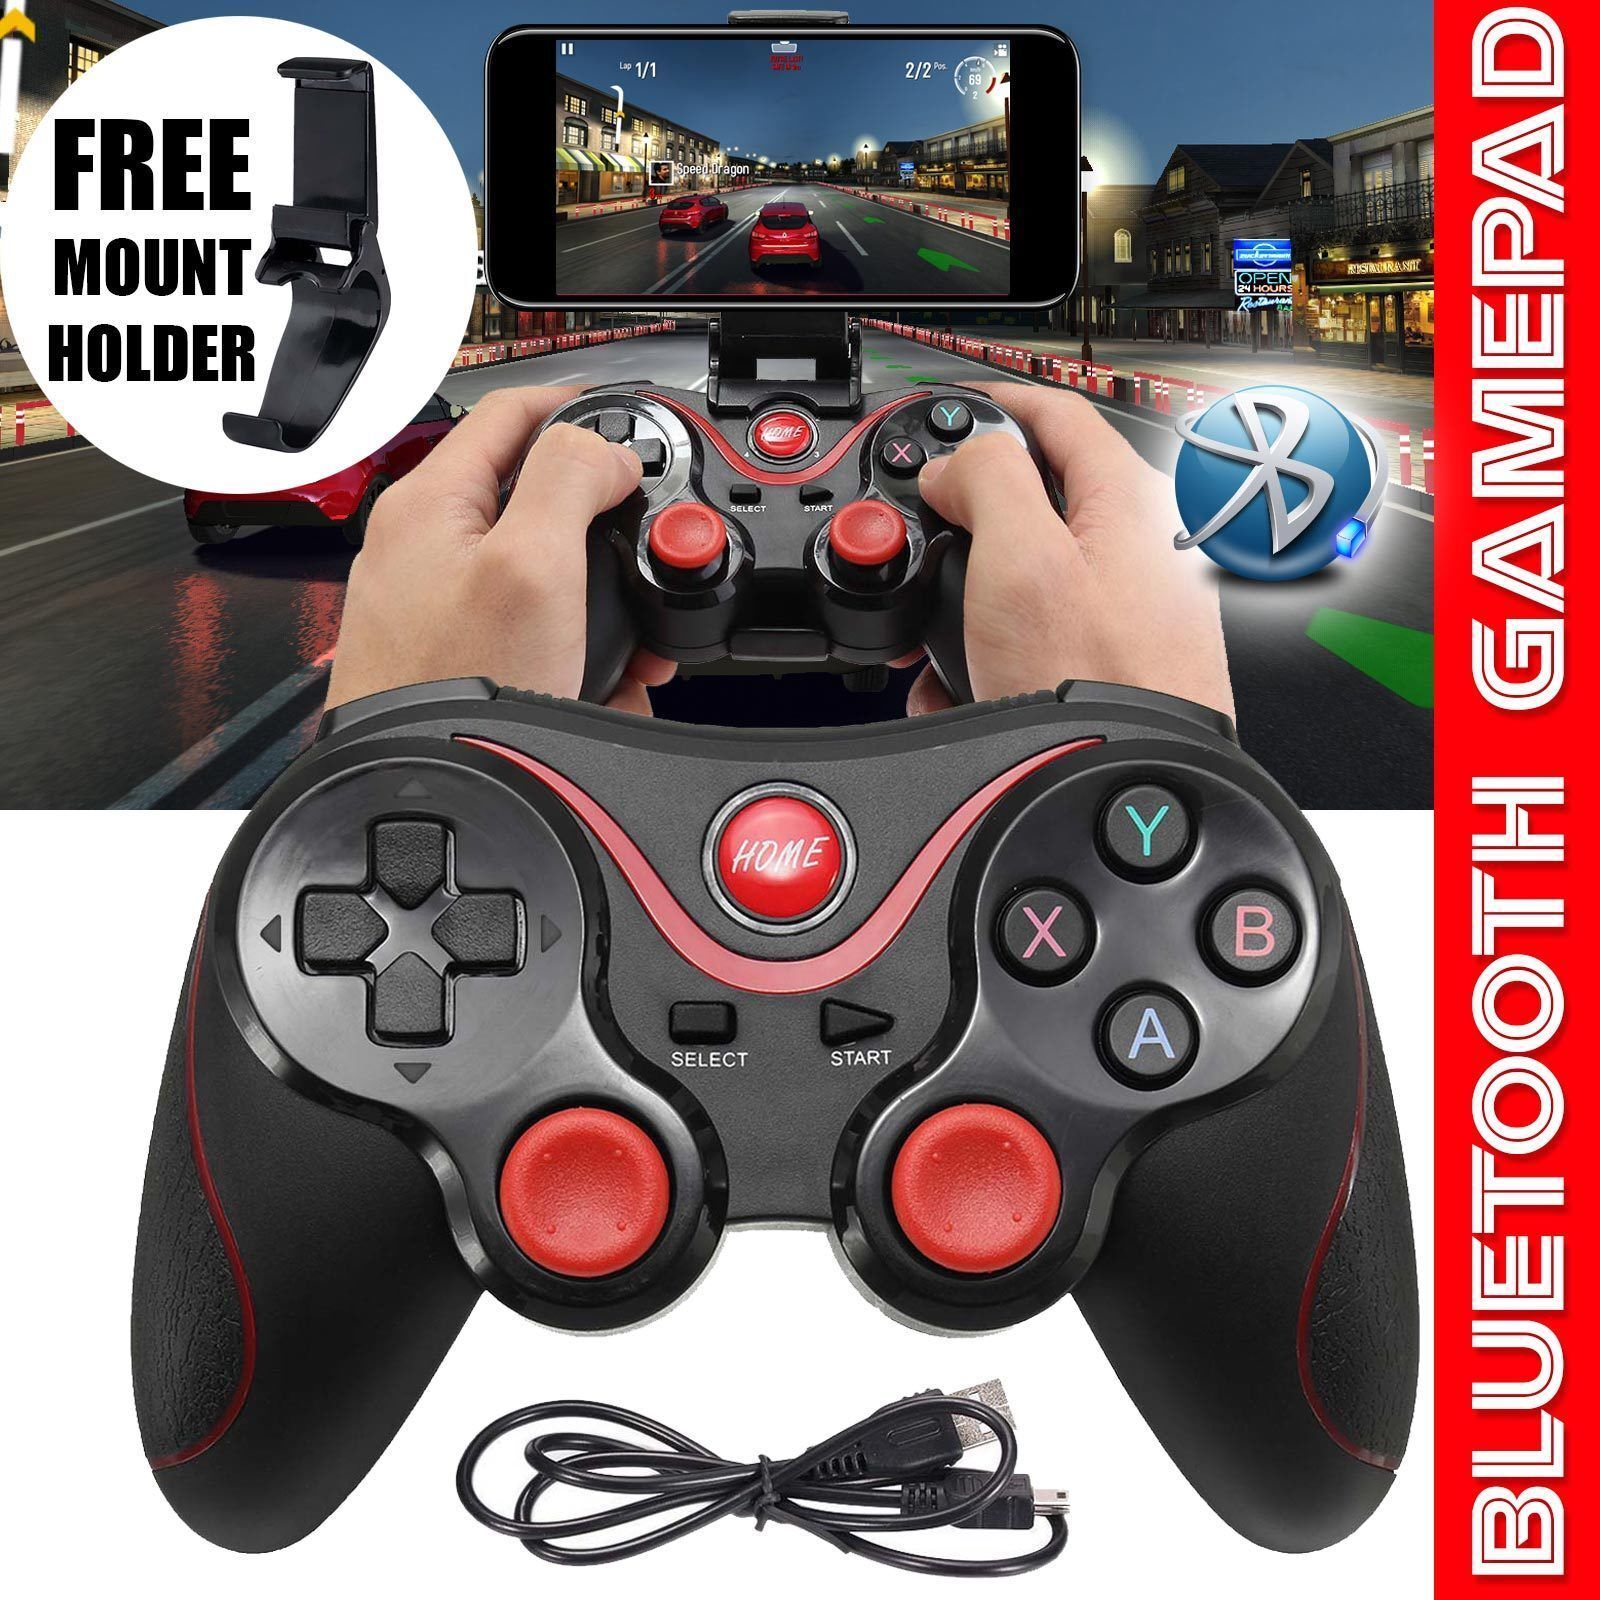 T3 Smart Phone Game Controller Wireless Joystick Bluetooth 3.0 Android Gamepad Controllers & Attachments